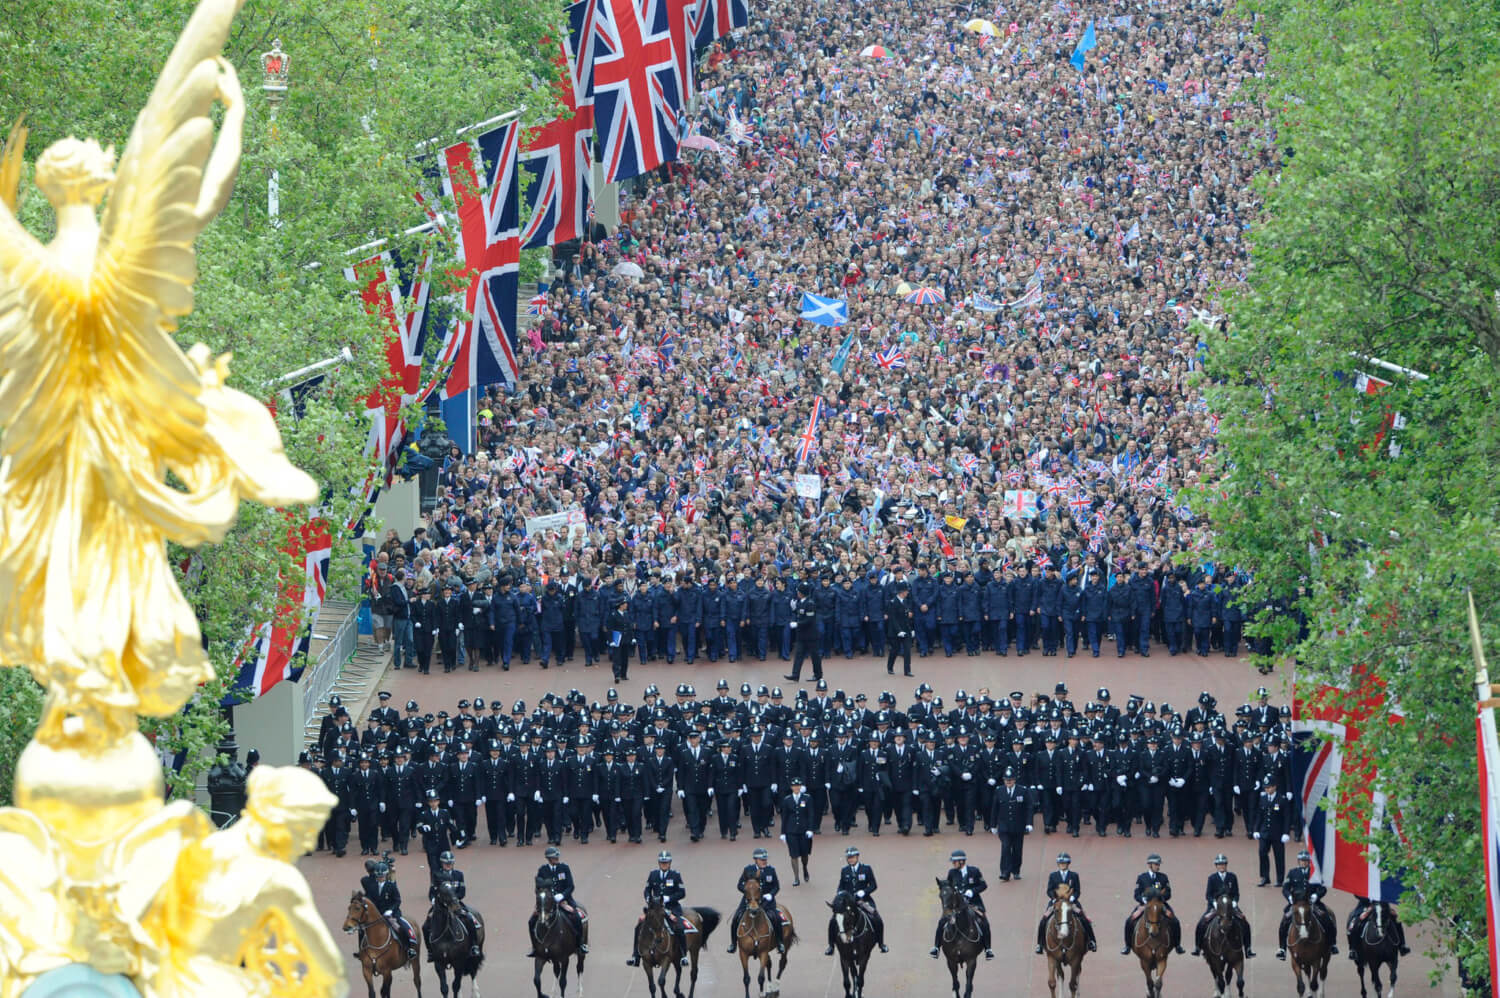 Crowds On The Mall for Queen's Diamond Jubilee Celebrations